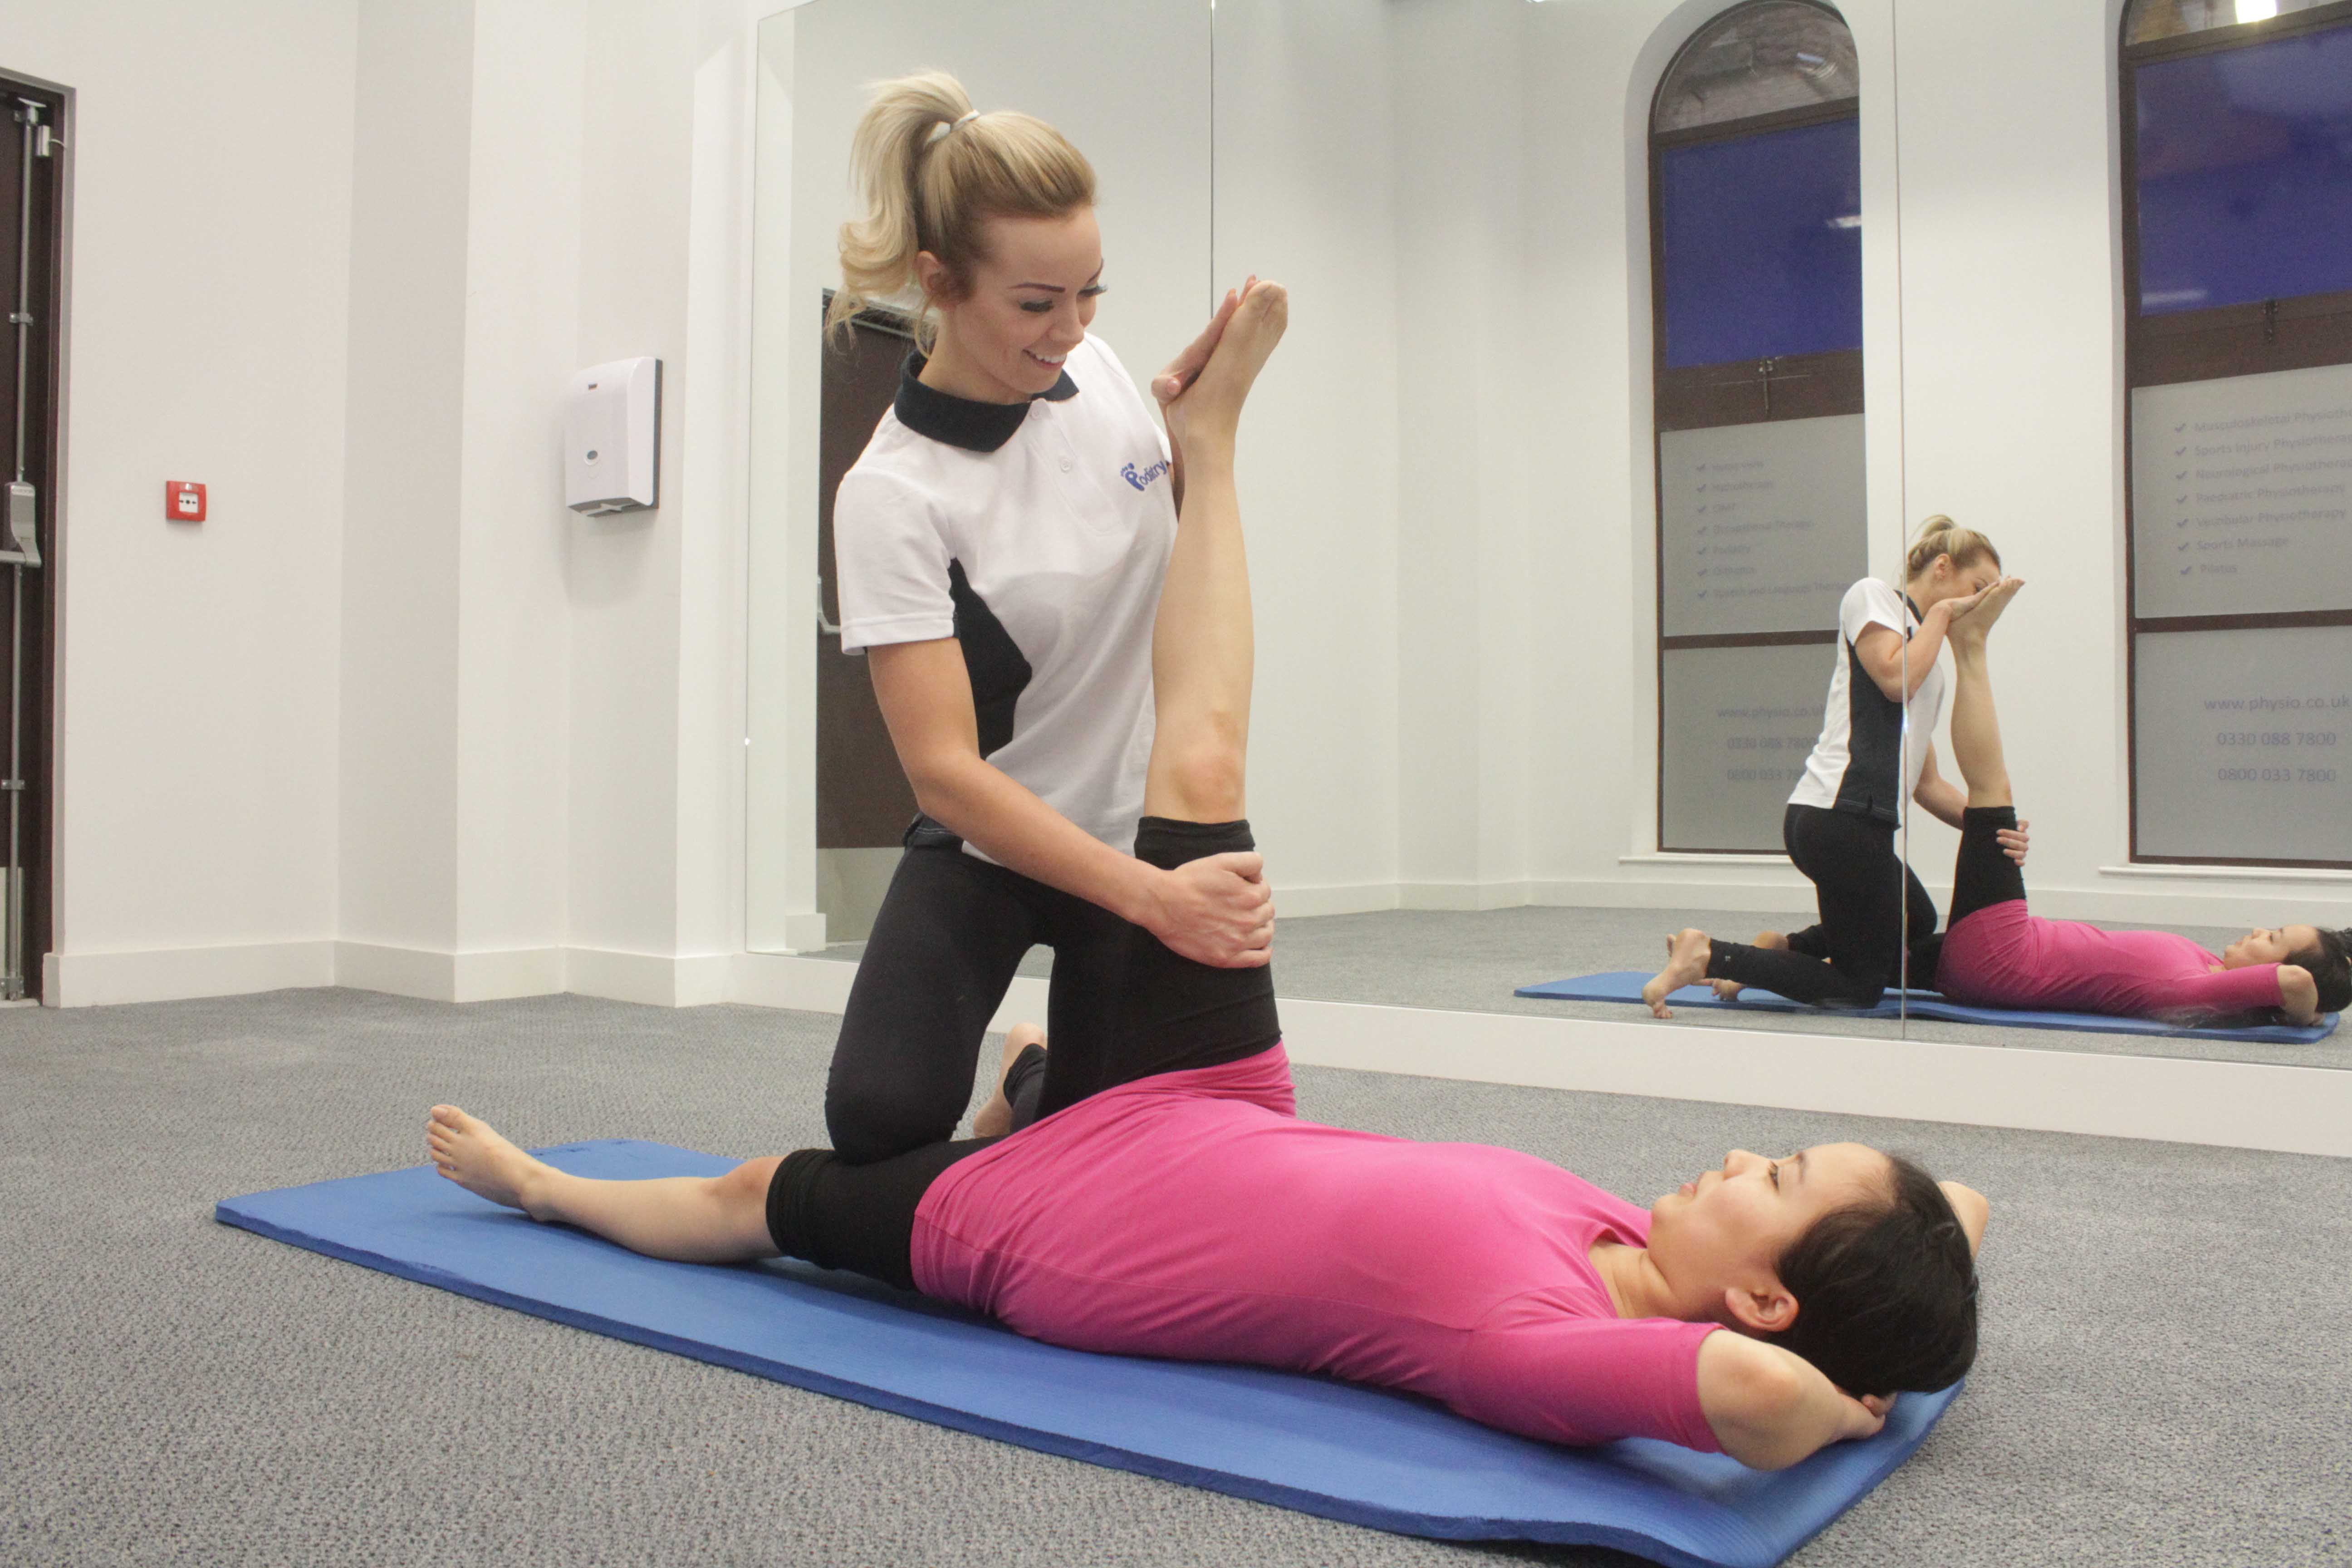 Stengthening exercises under close supervision of paediatric physiotherapist